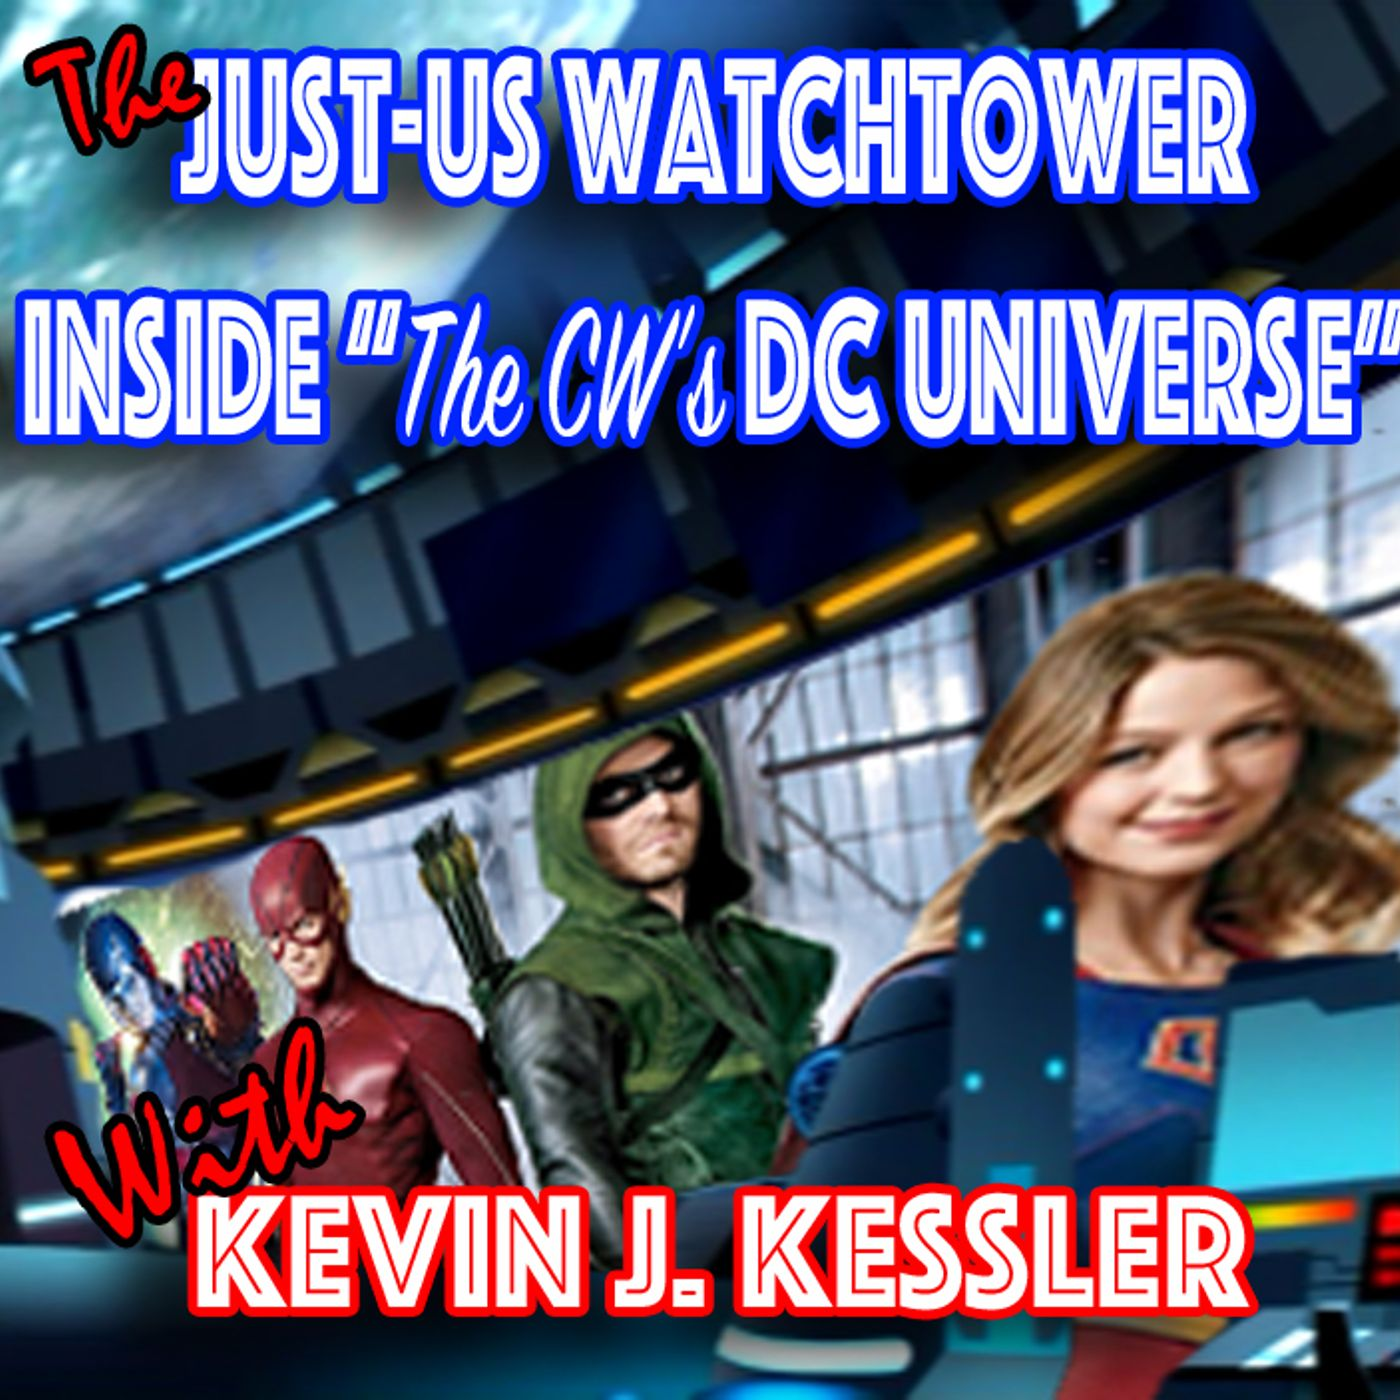 006 Just Ust Wtachtower: ELSEWORLDS Discussions